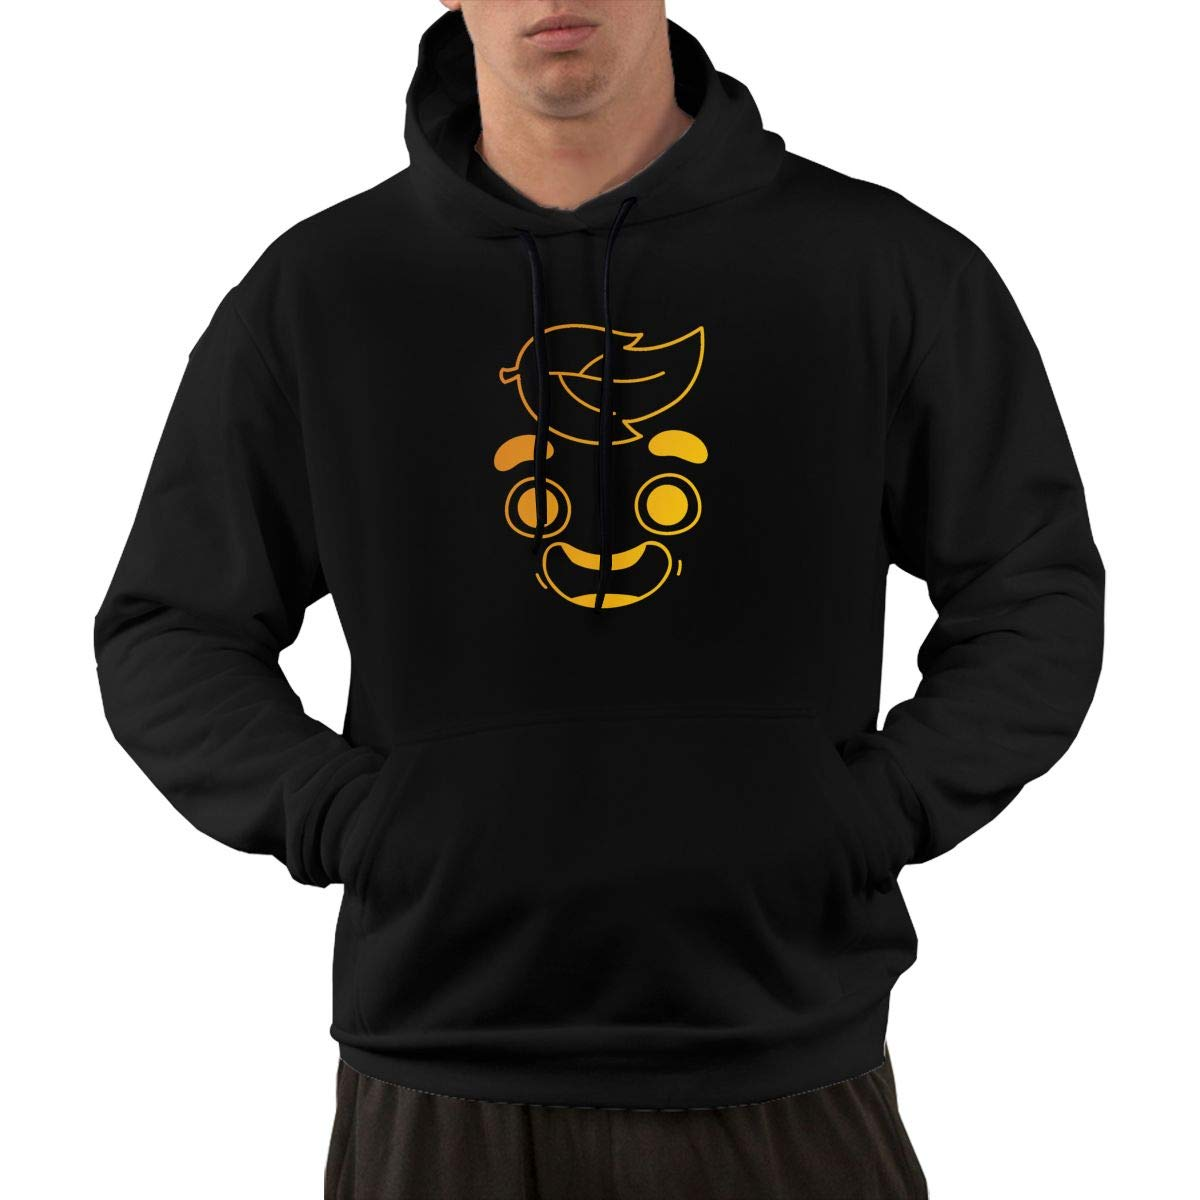 Neloha S Pullover Gold Guava Juice Face Hooded Aesthetic S For Shirts